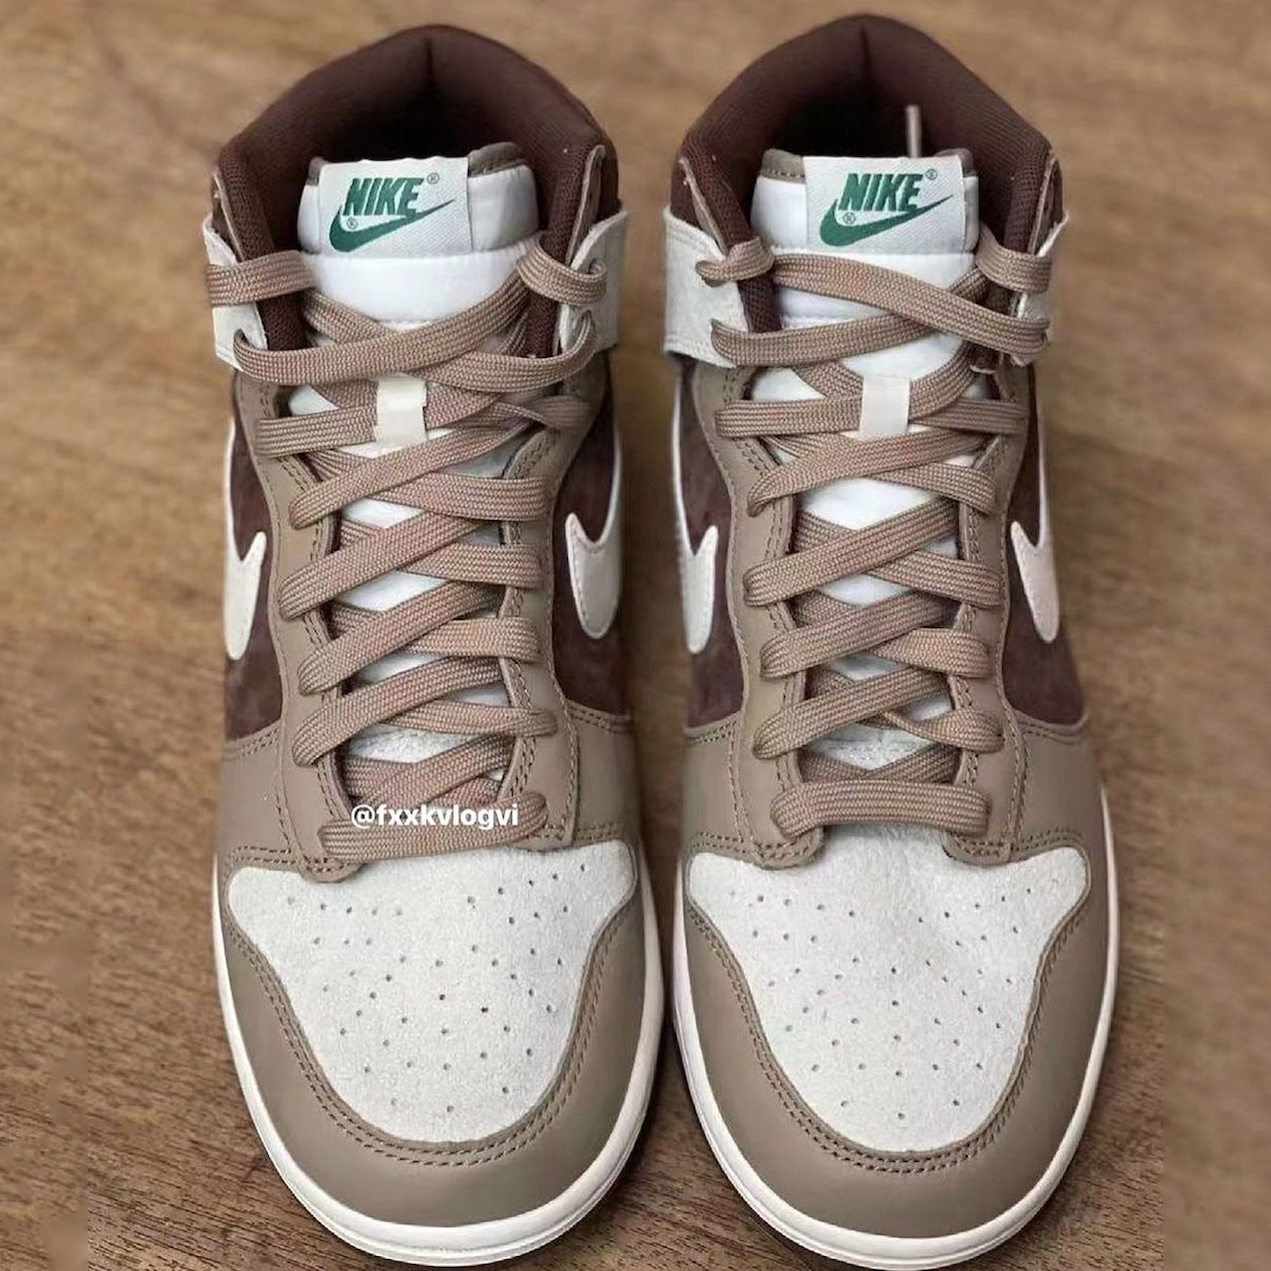 nike dunk high light chocolate dh5348 100 release date 001